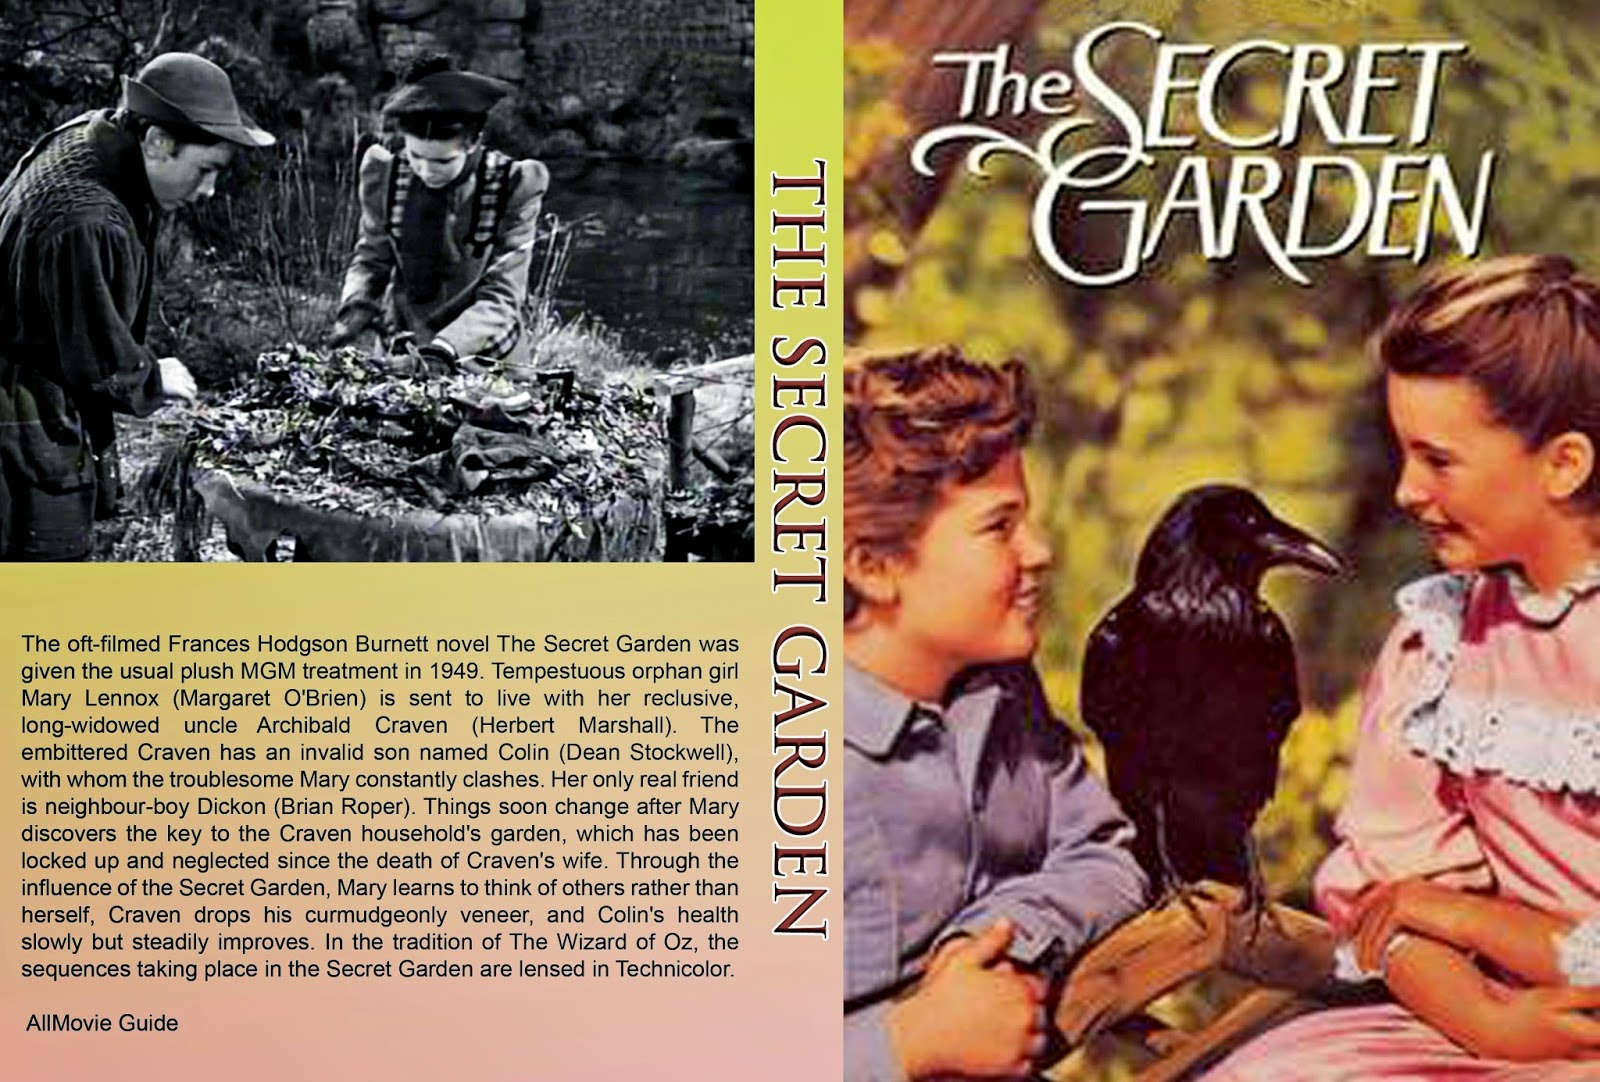 El jardín secreto (1949 - The Secret Garden)